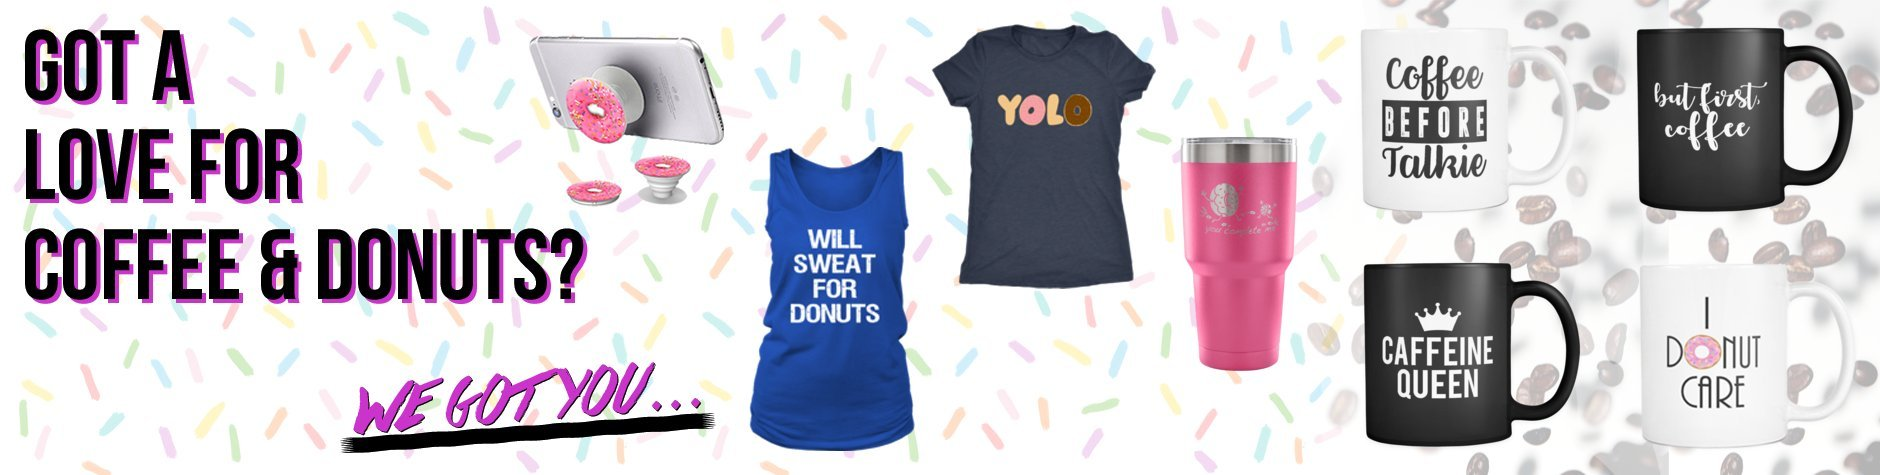 Coffee and Donut Mugs tshirts accessories